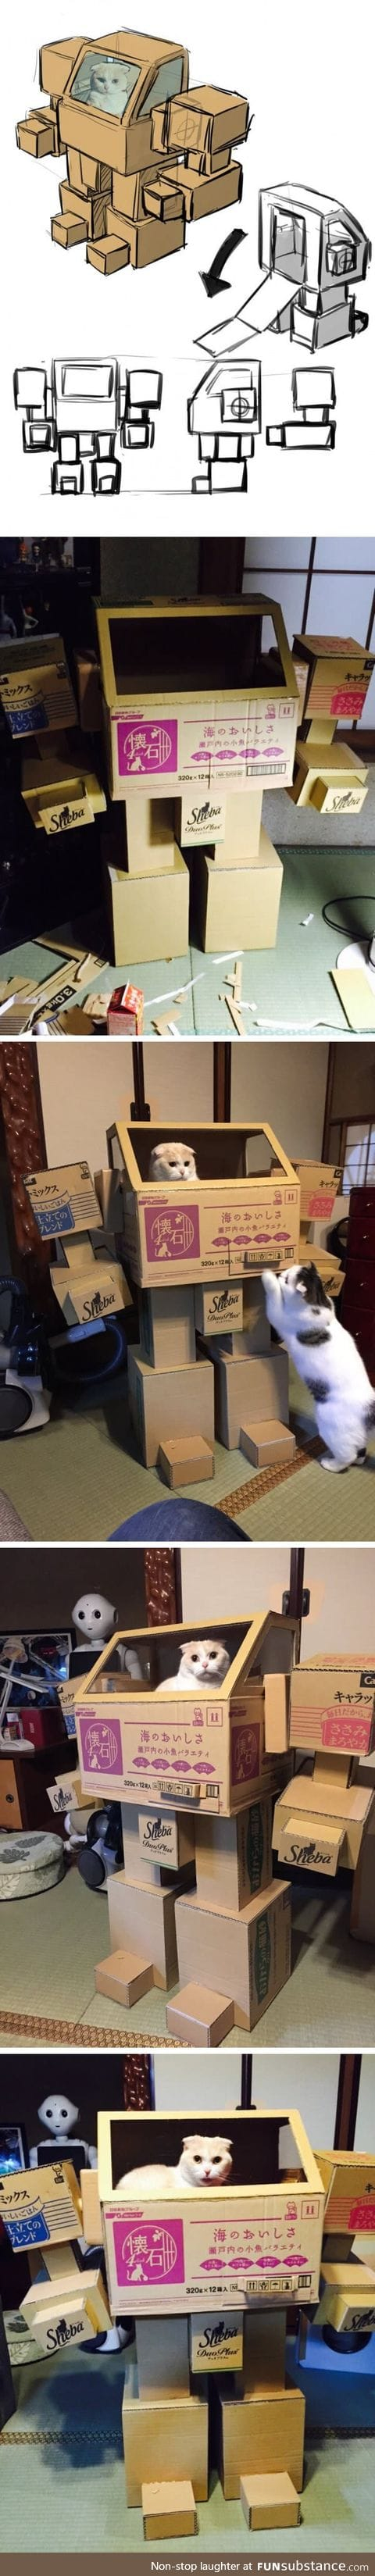 Pet owner built a battletech playhouse for cate